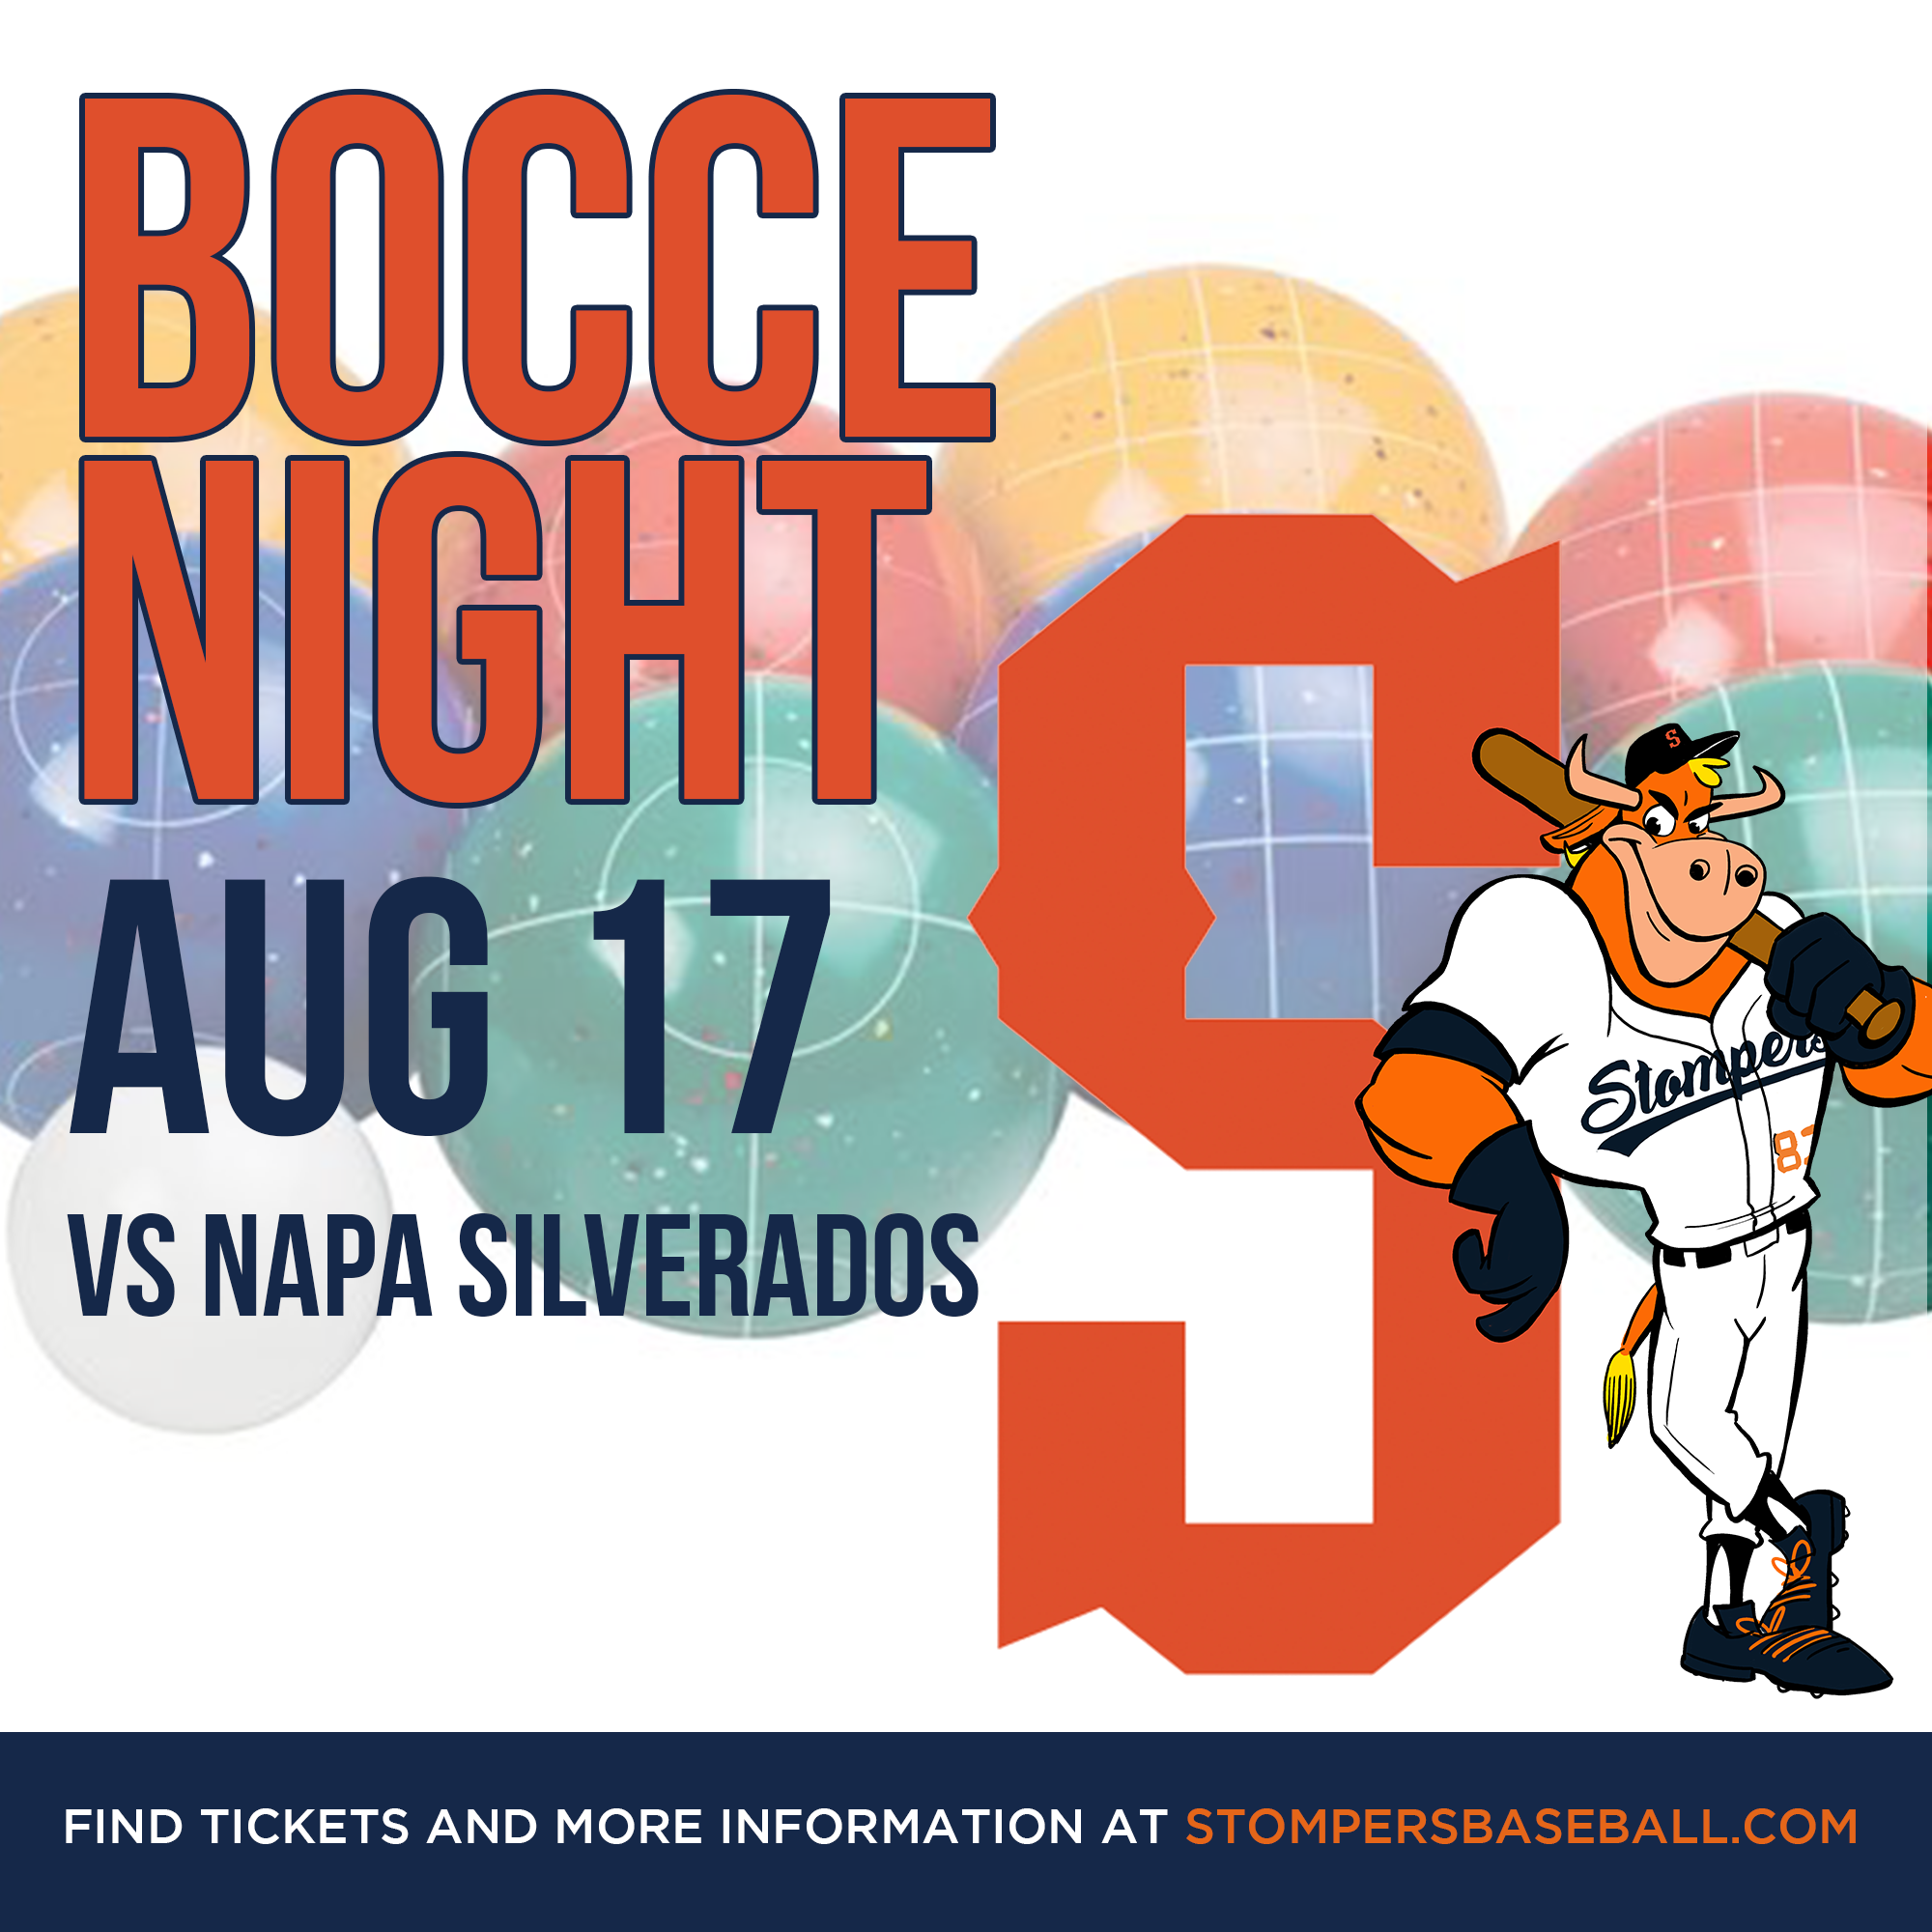 Aug 17: Bocce Night - Bocce and baseball go hand in hand! Come out to Palooza Park at Arnold Field for Bocce Night!